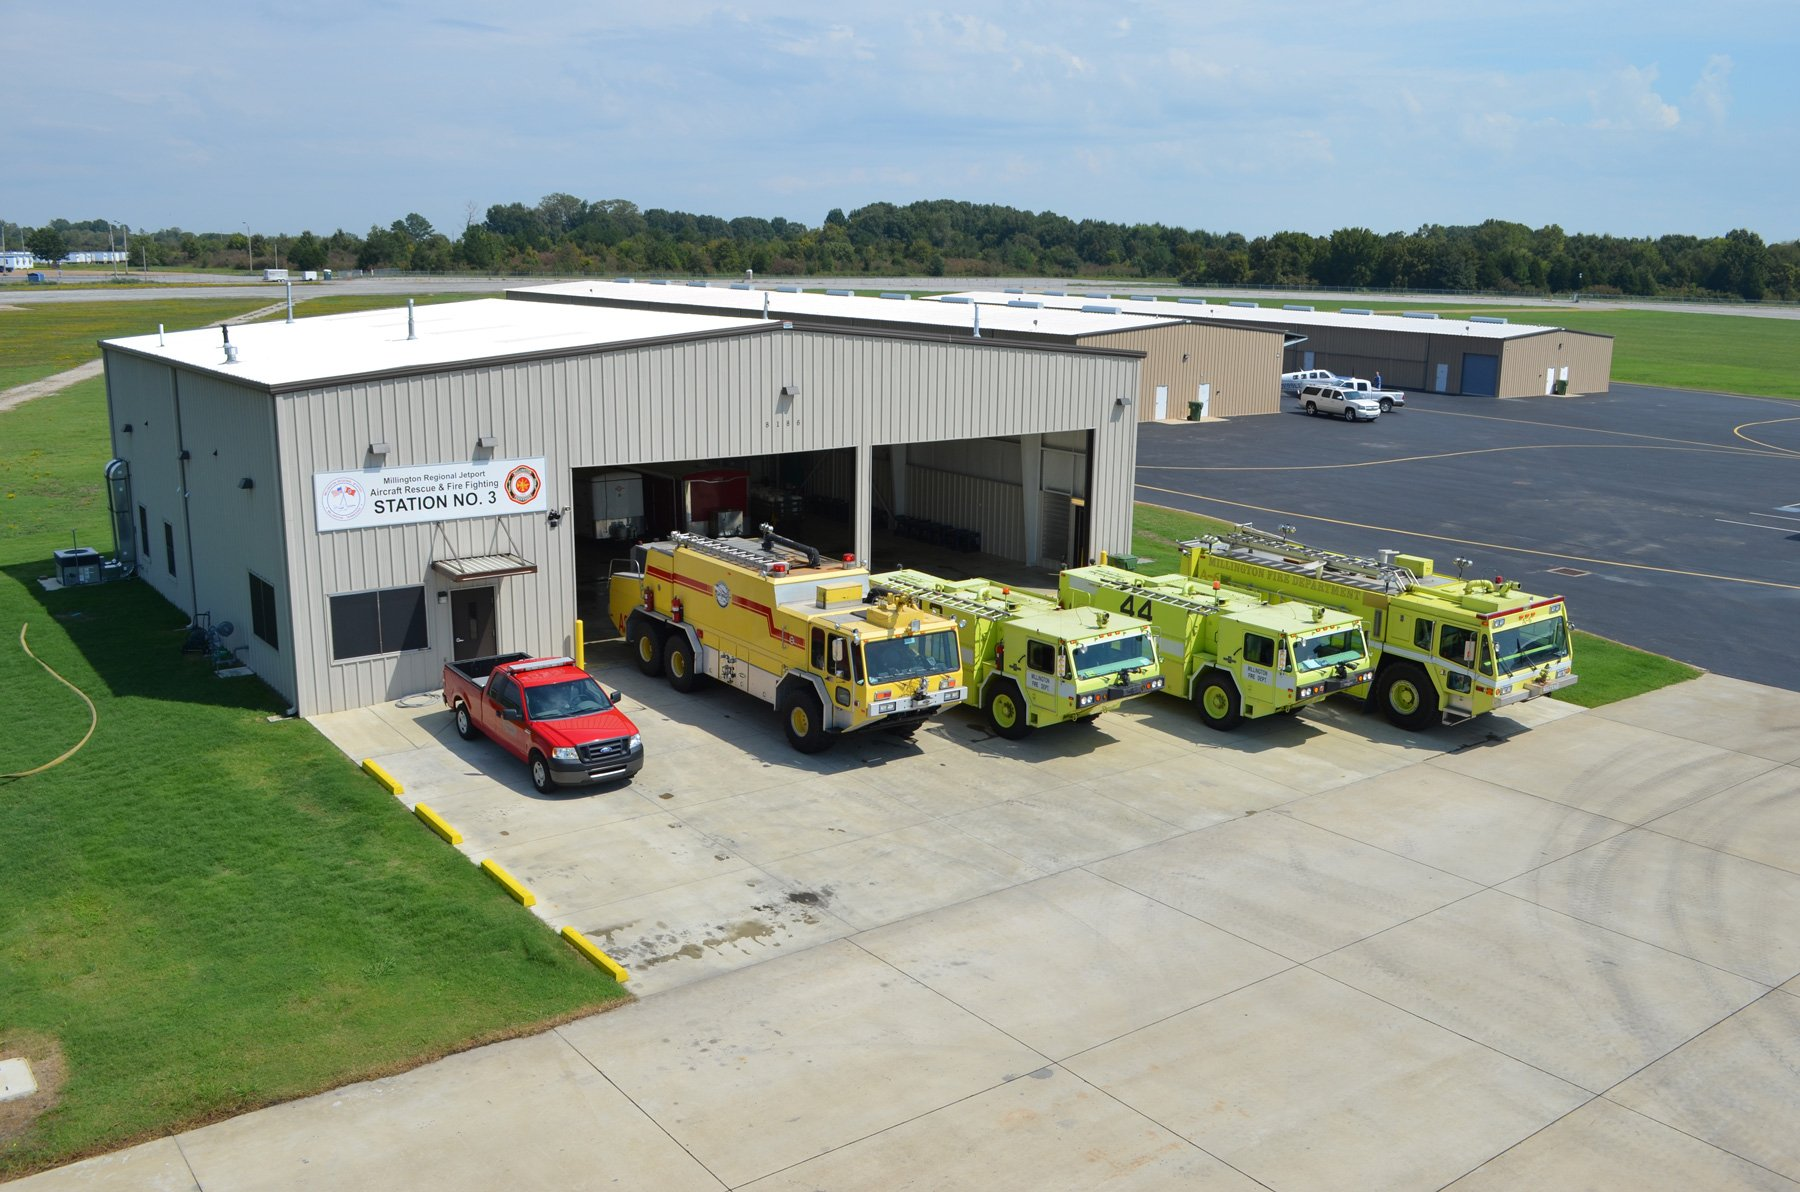 Image of the Airport Fire Station with five trucks parked in front of it at the Memphis Millington Airport